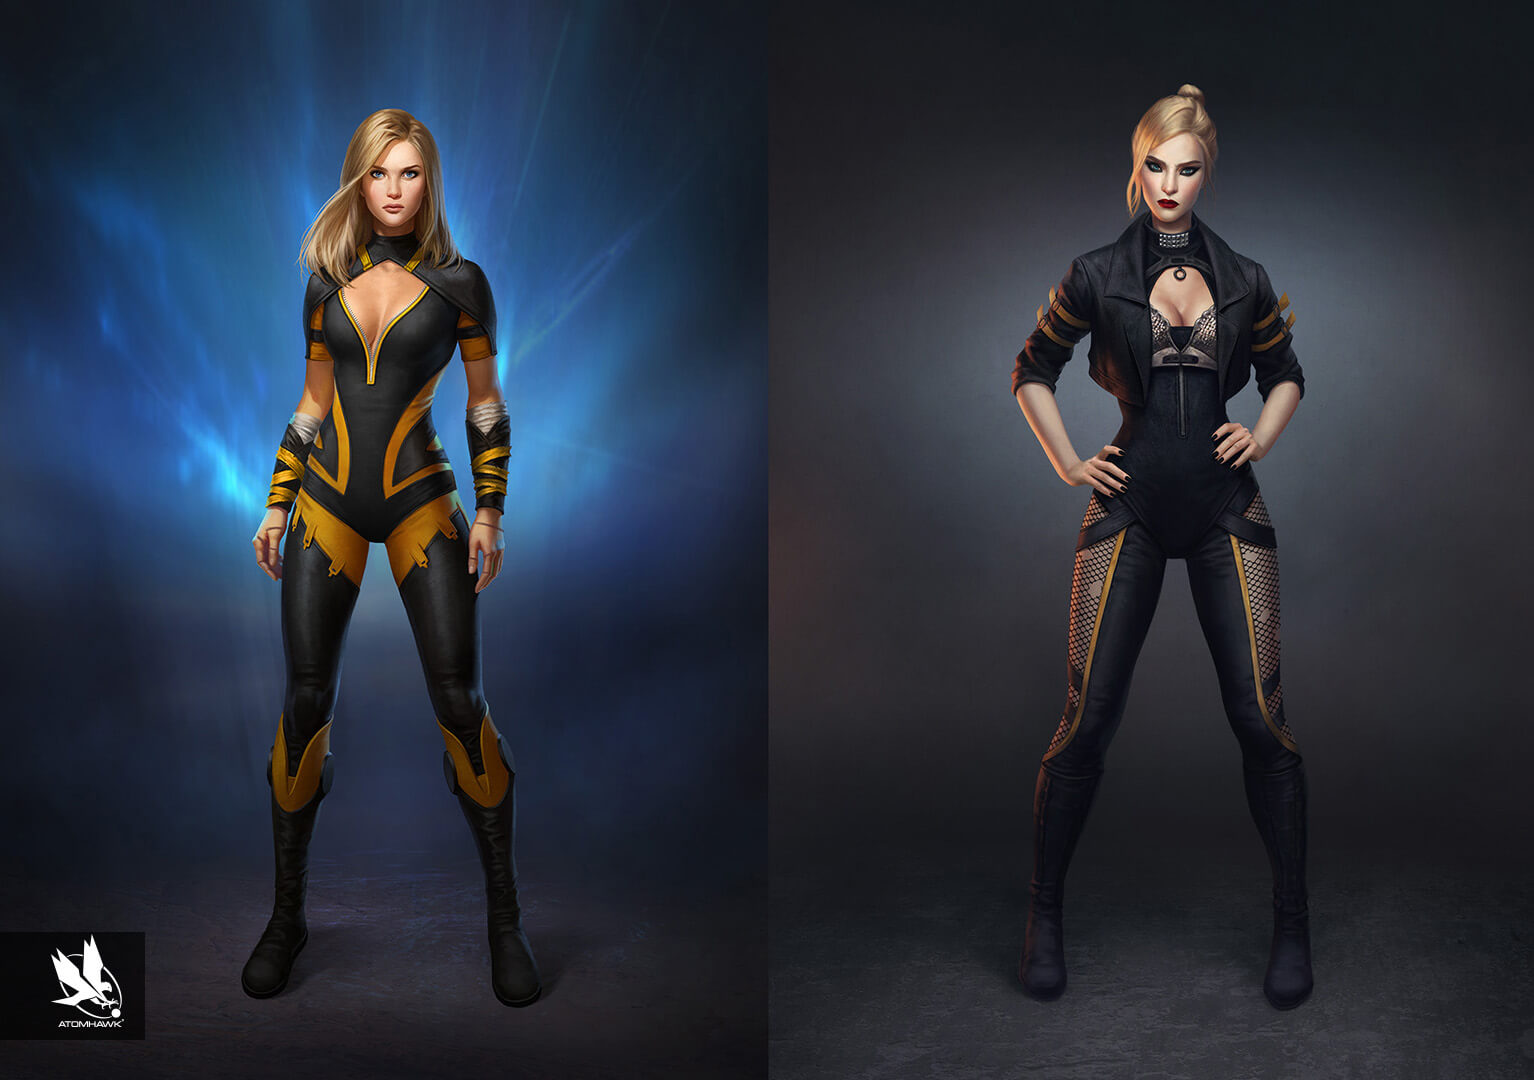 Character Art - Injustice2 - Black Canary